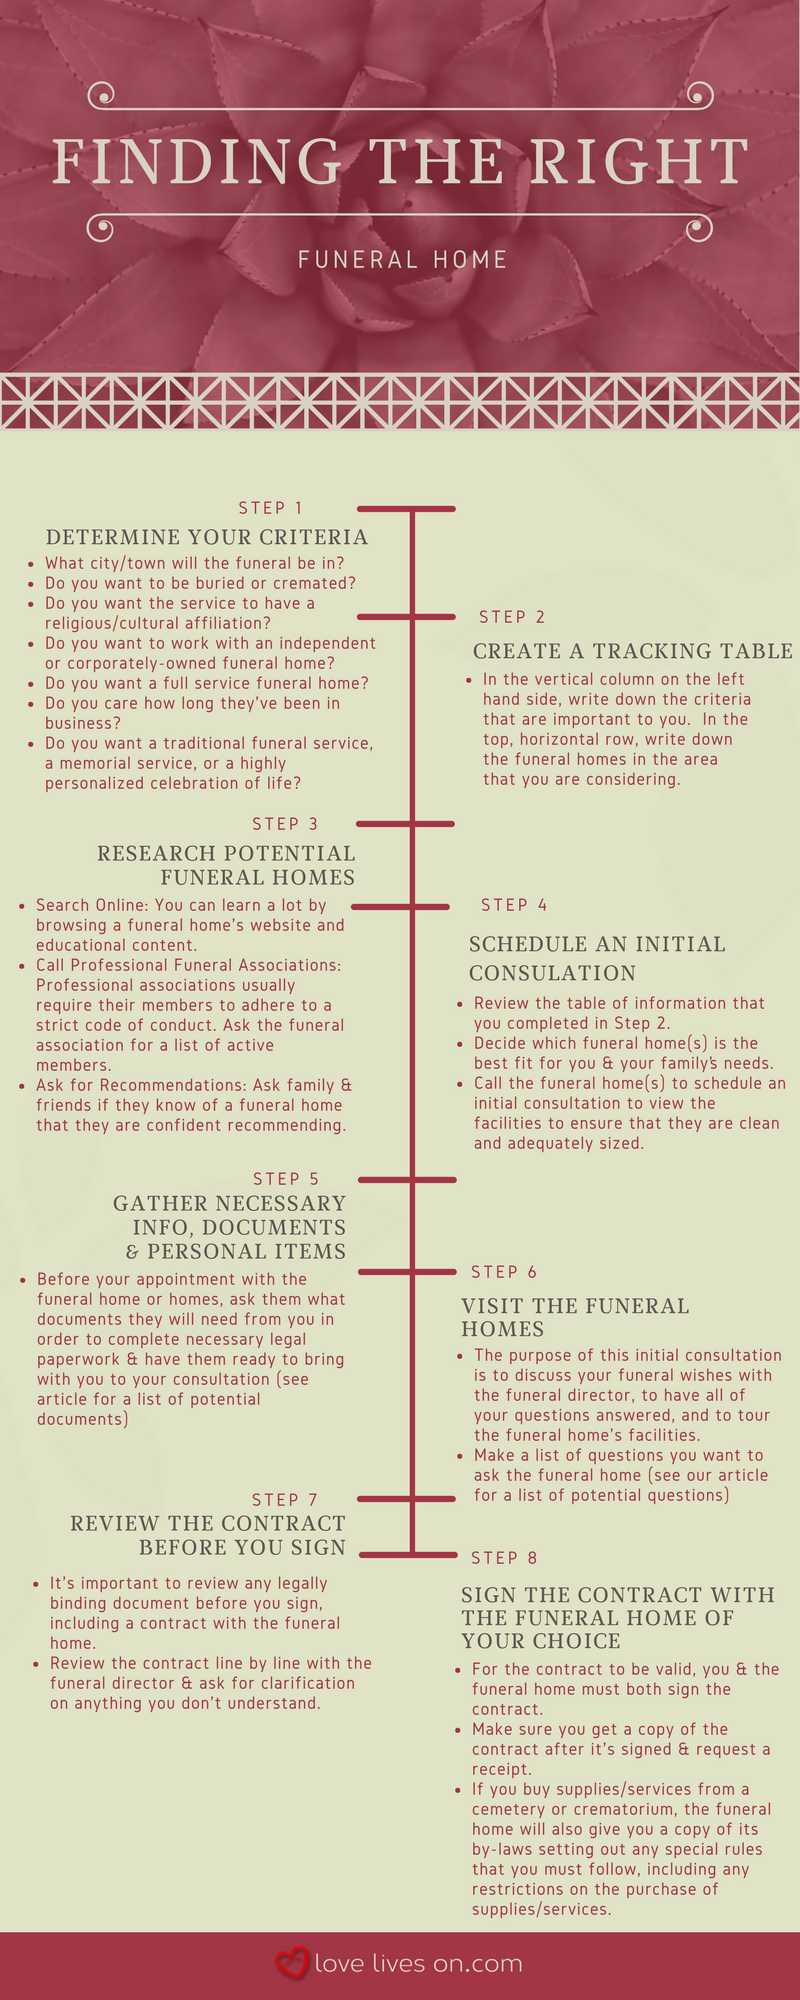 How to Choose a Funeral Home Infographic